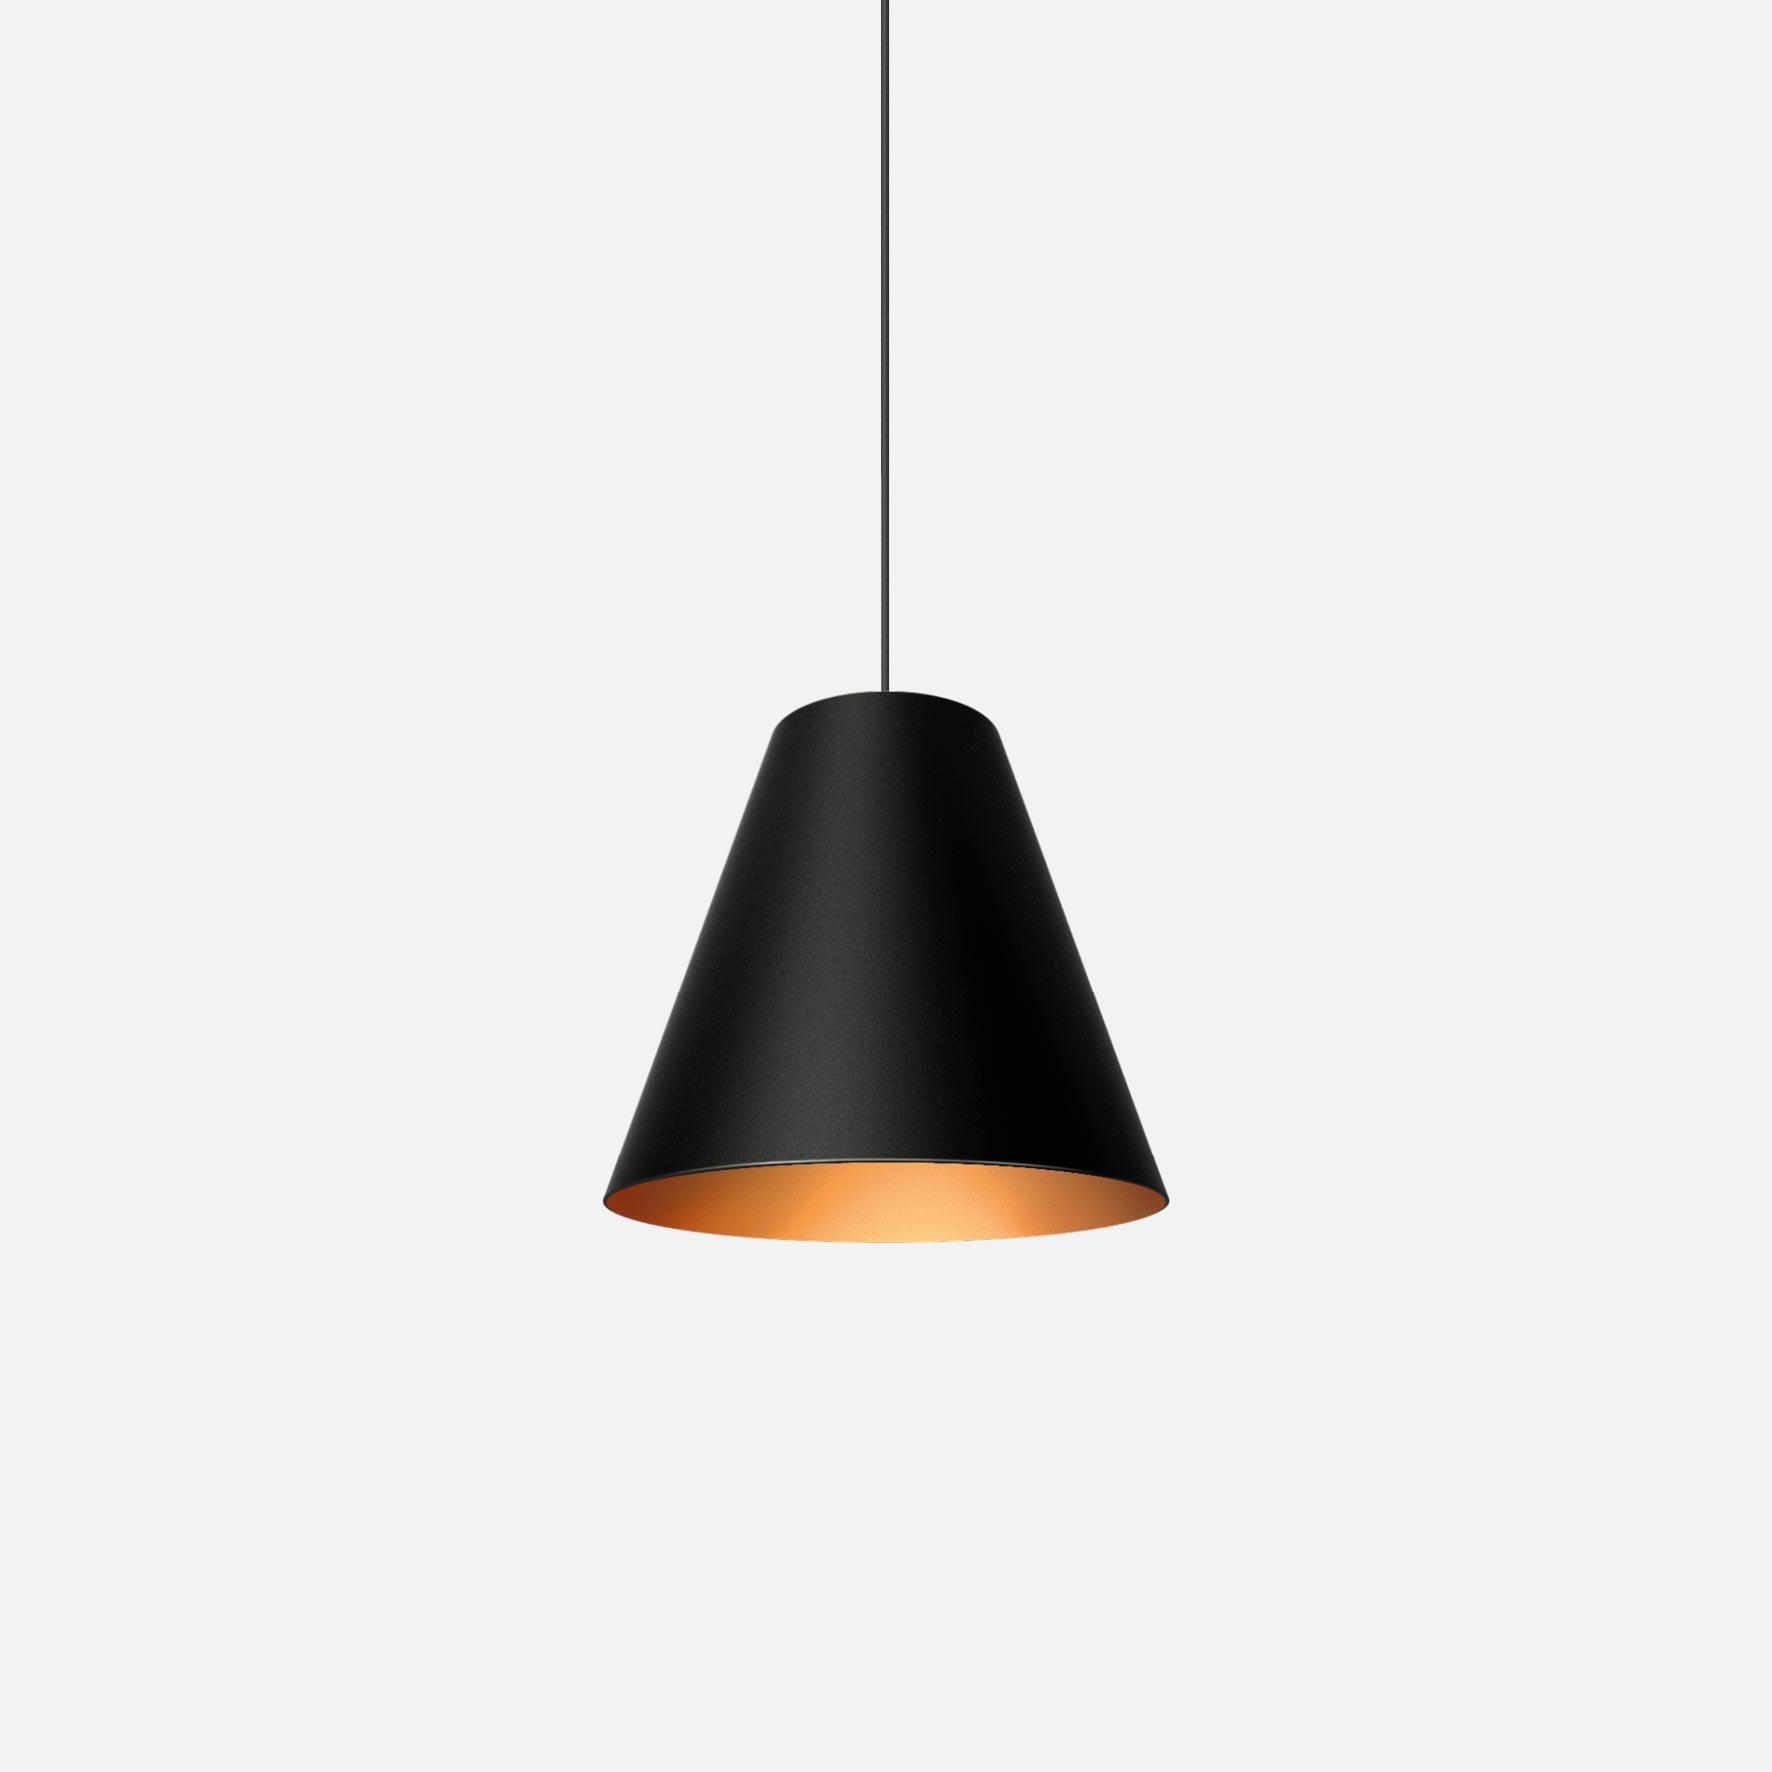 Shiek 4.0 led black texture copper